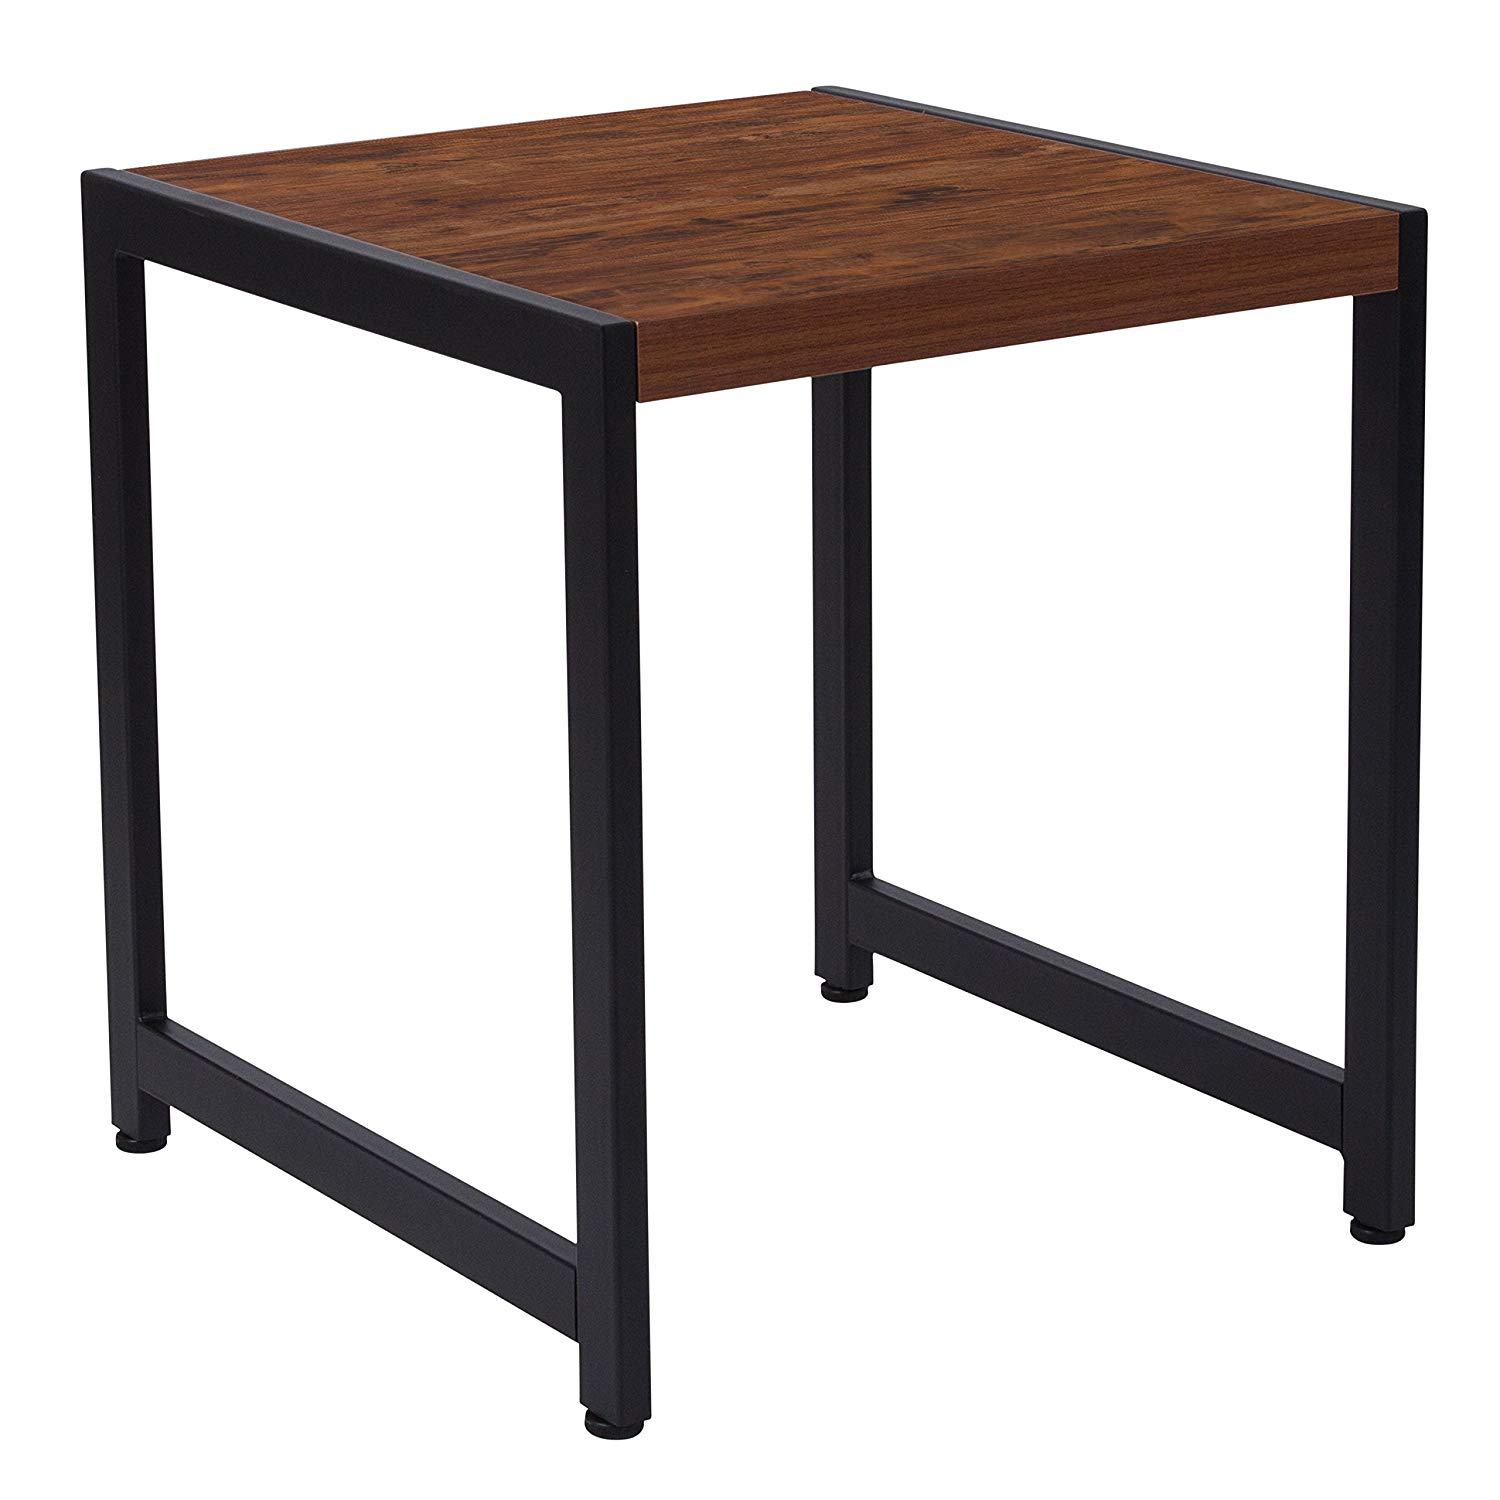 flash furniture grove hill collection rustic wood grain black finish end tables table with metal frame kitchen dining coupon code for kmart long night casa mollino big low coffee